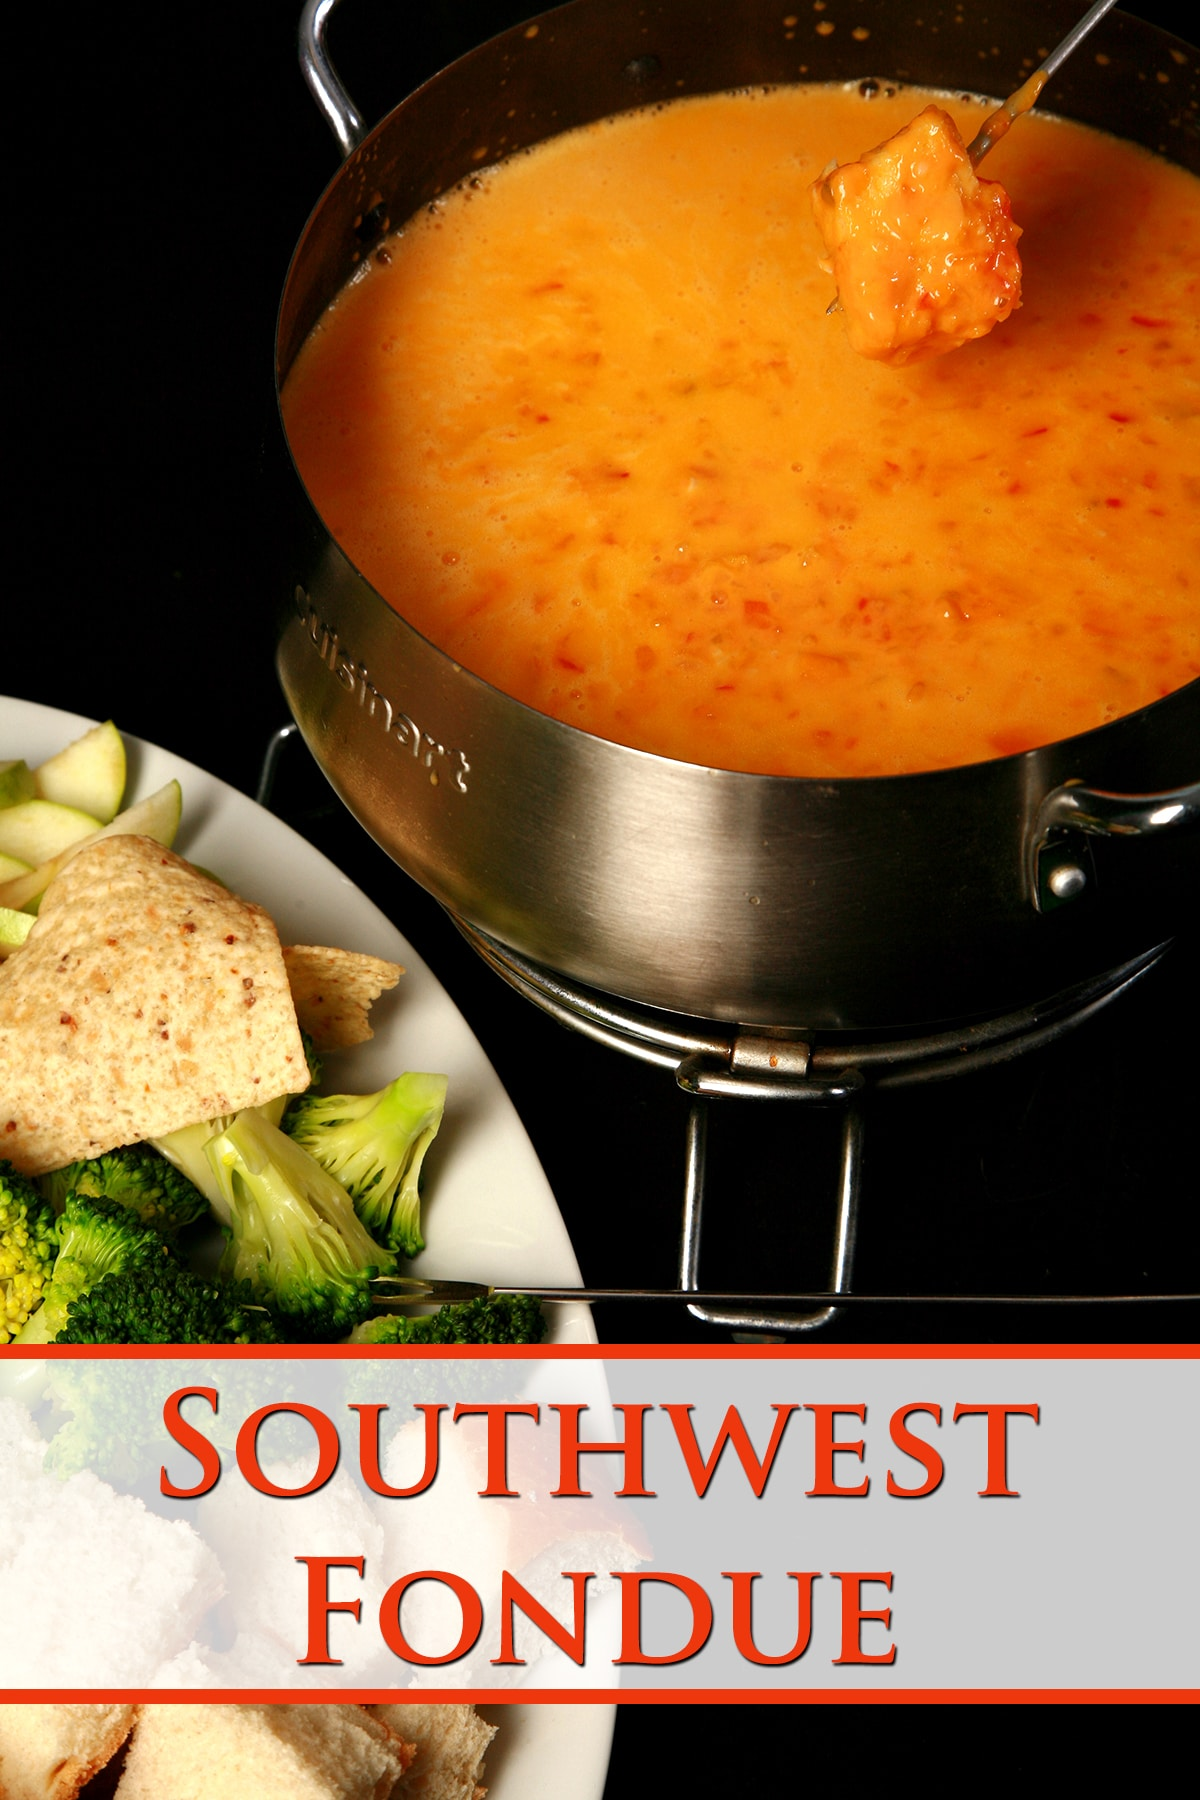 A fondue pot of southwest fondue, next to a plate of bread cubes, broccoli, and tortilla chips.